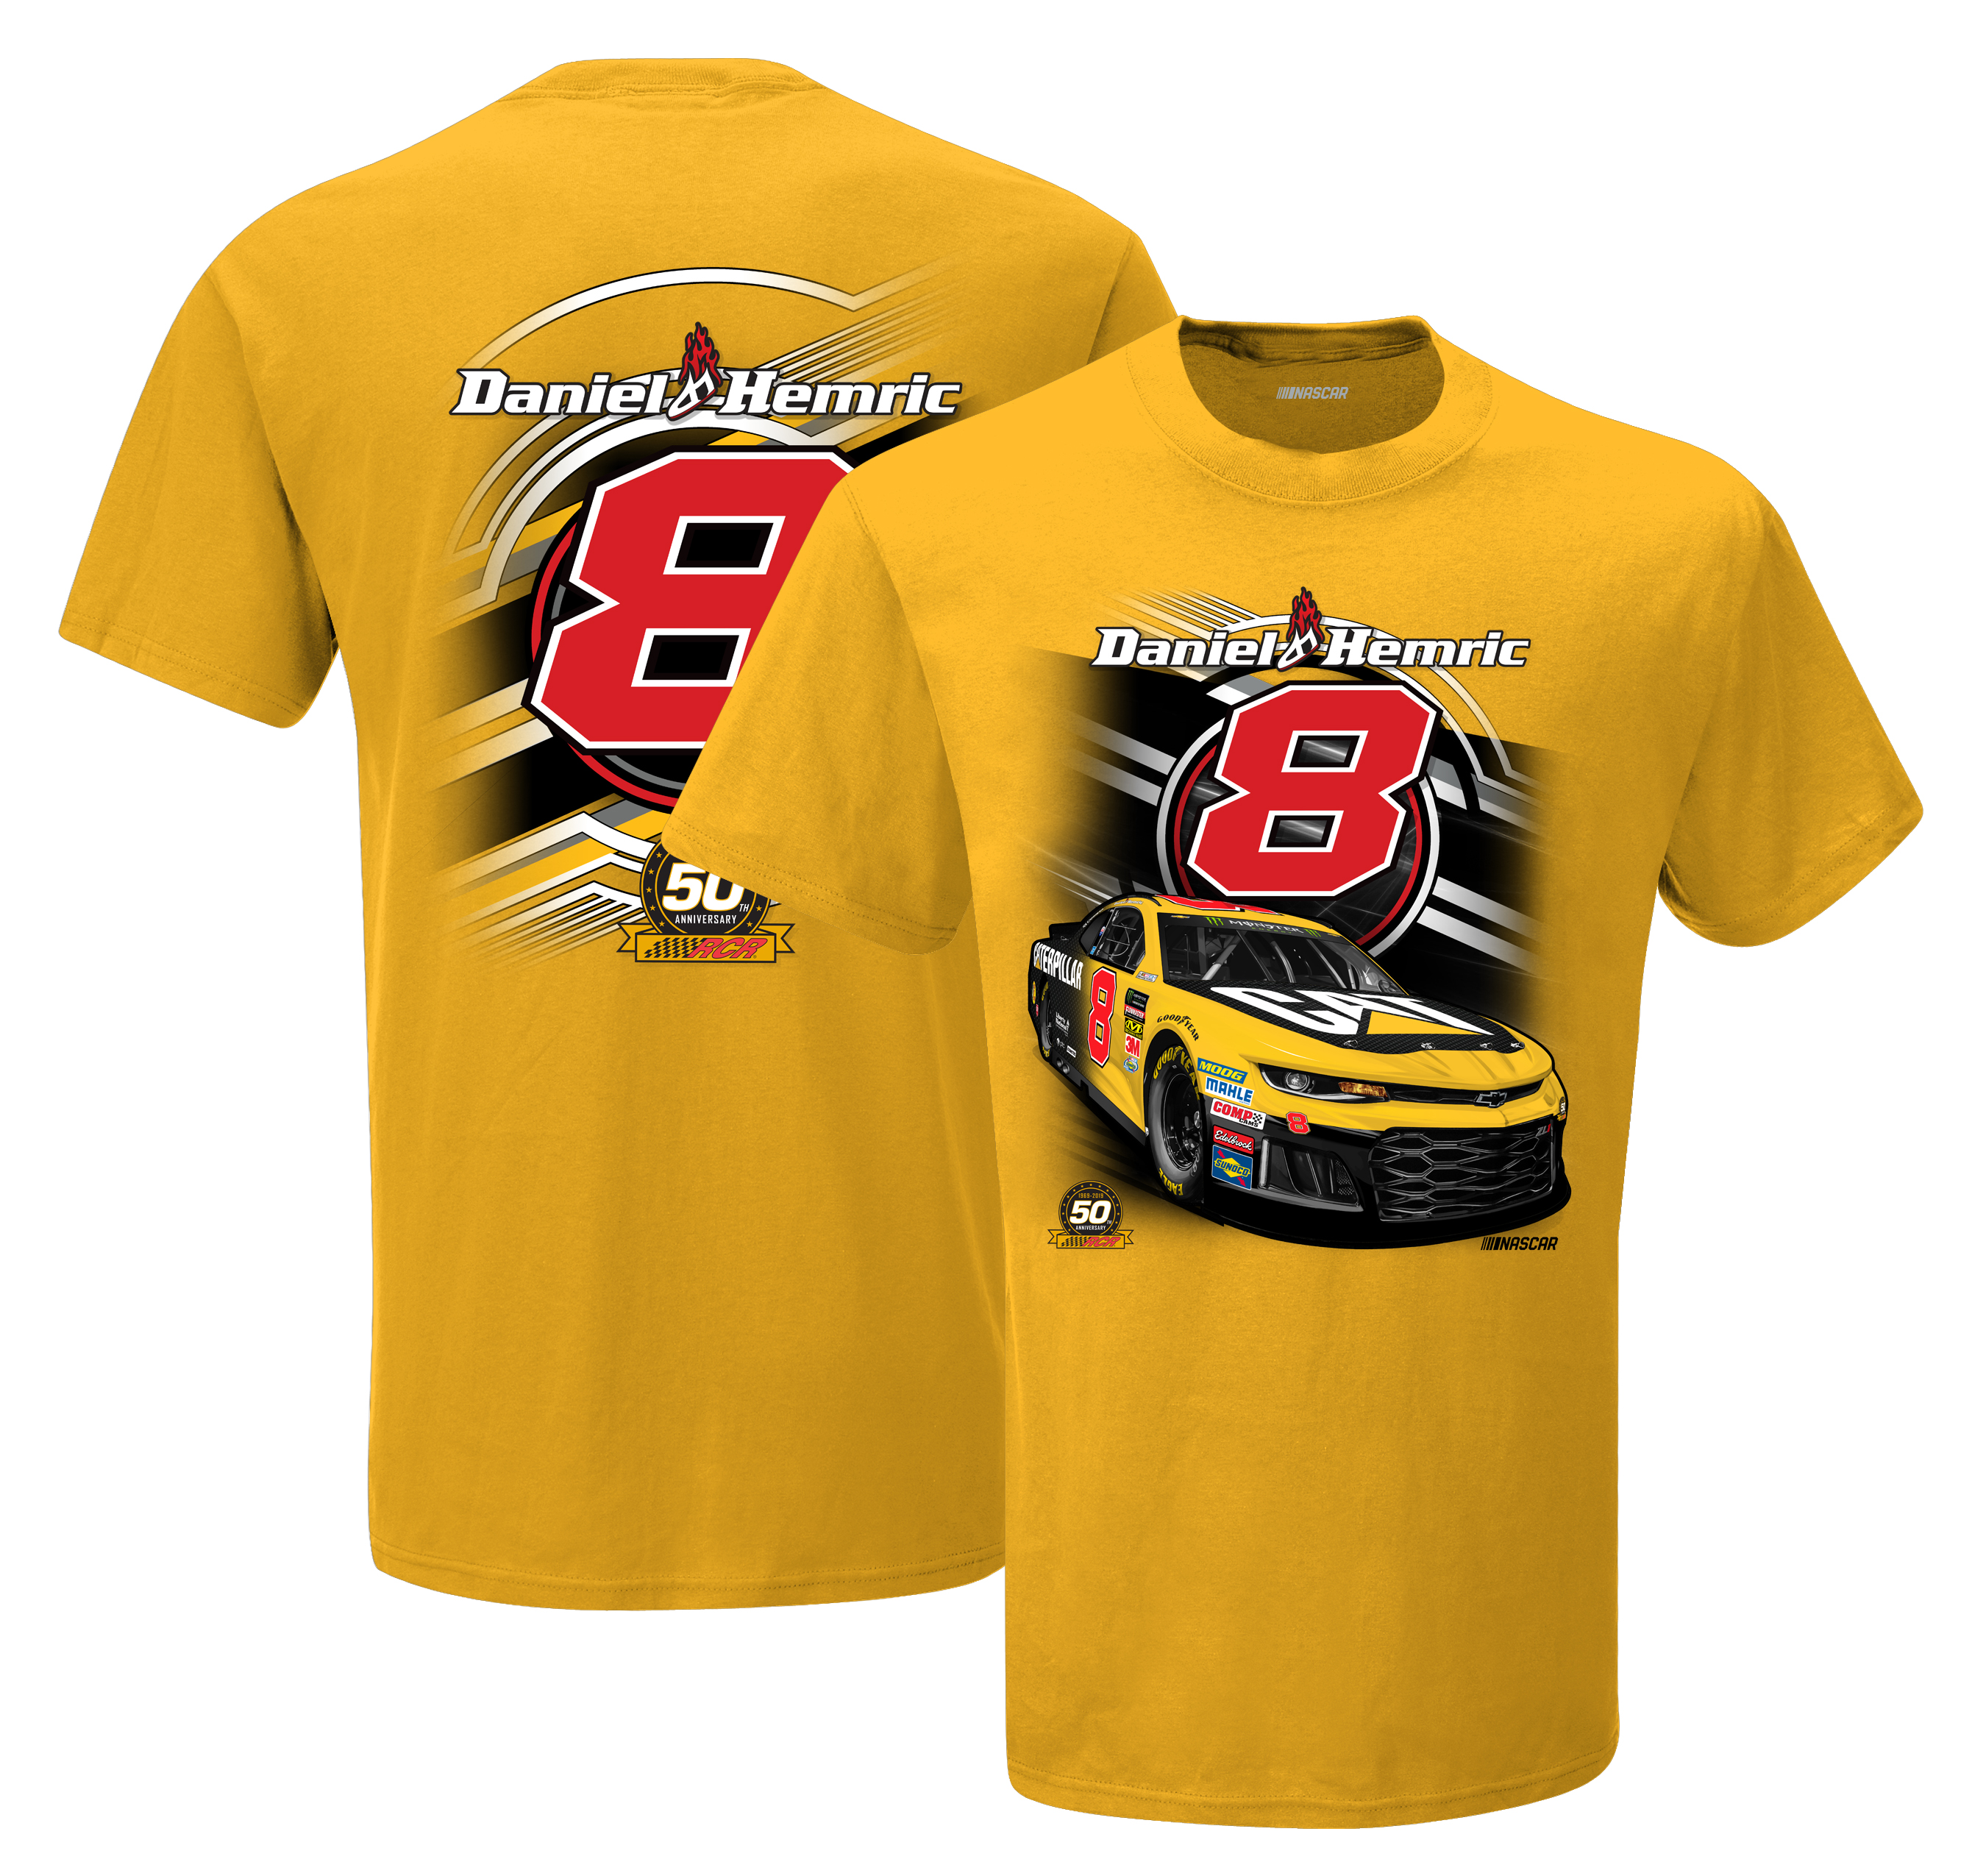 Daniel Hemric Backstretch Tee